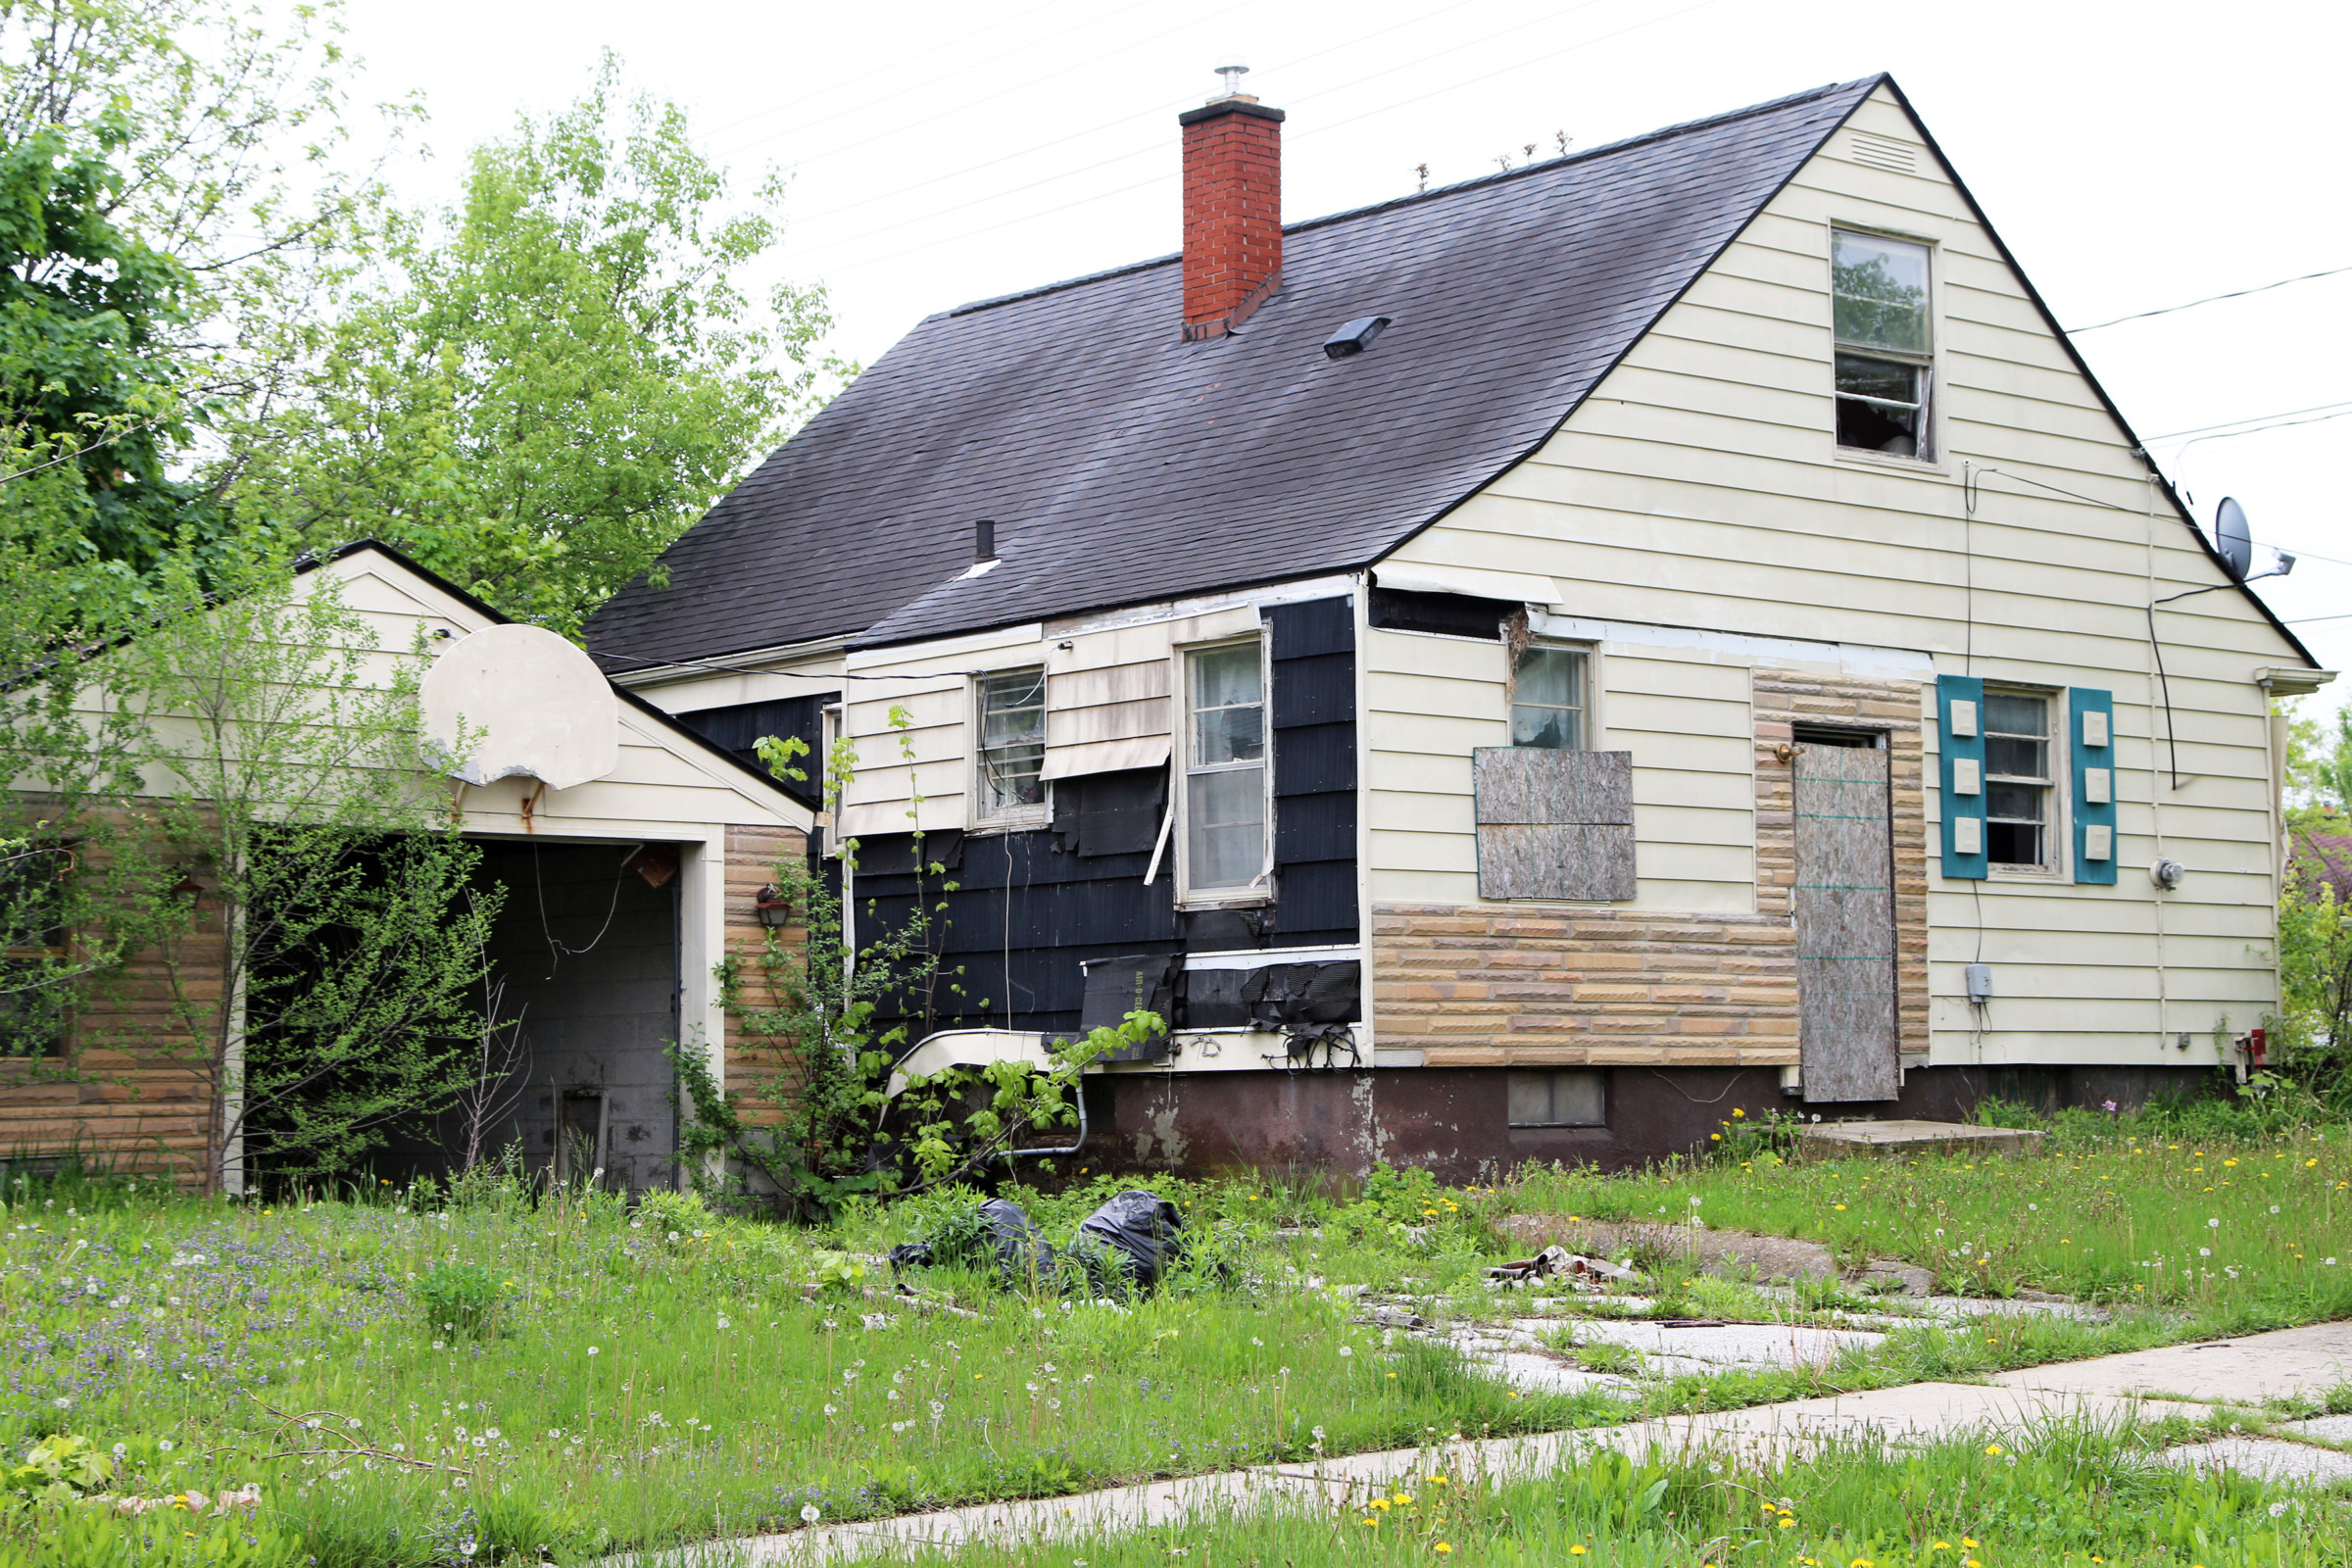 Should I Sell My House As Is Or Fix It Up?